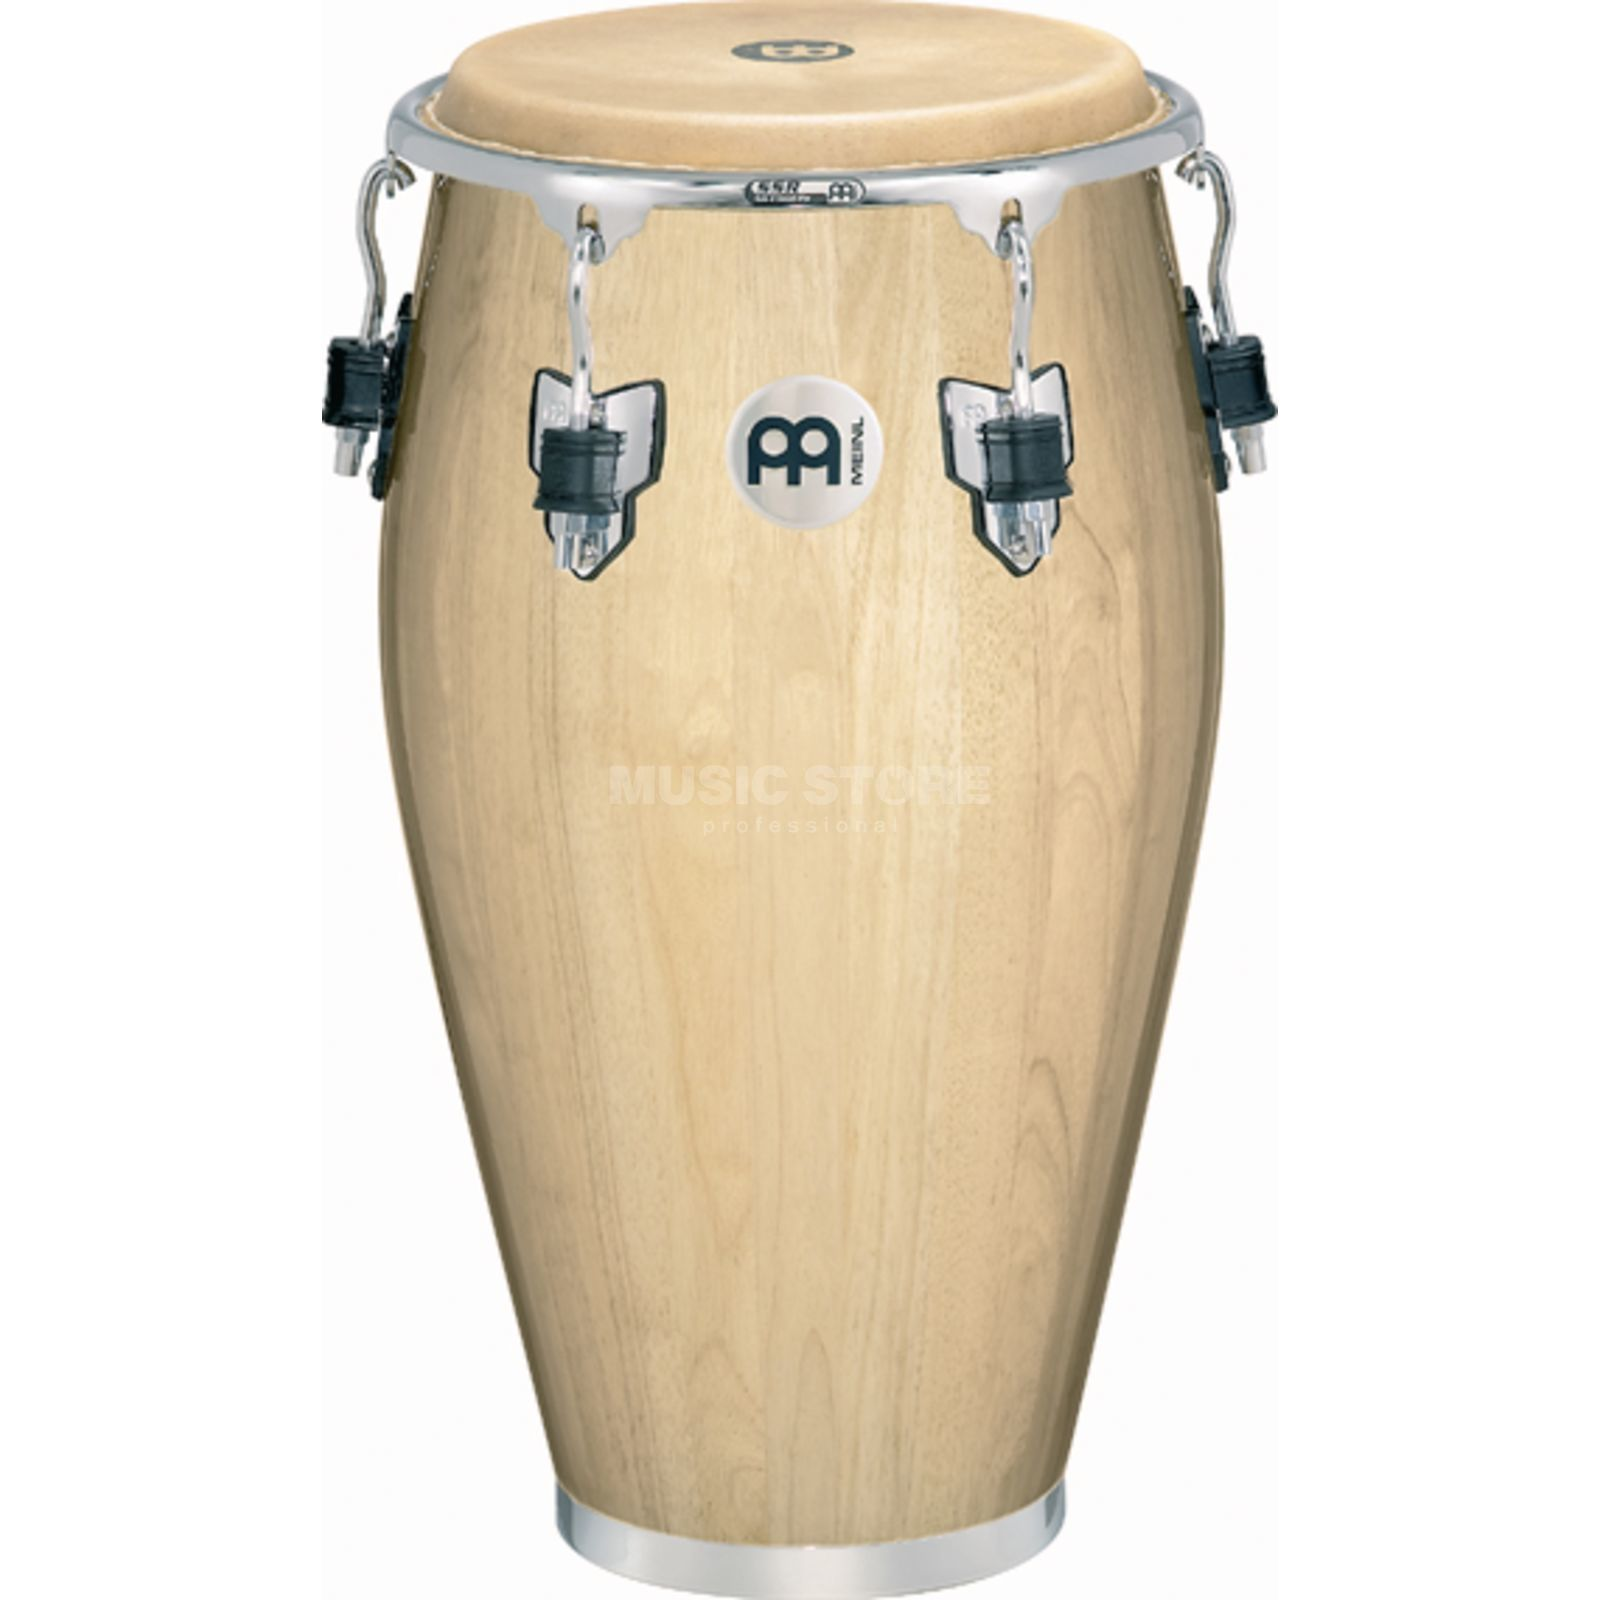 "Meinl Professional Conga MP1212, 12 1/2"" Tumba, Natural, B-Stock Productafbeelding"